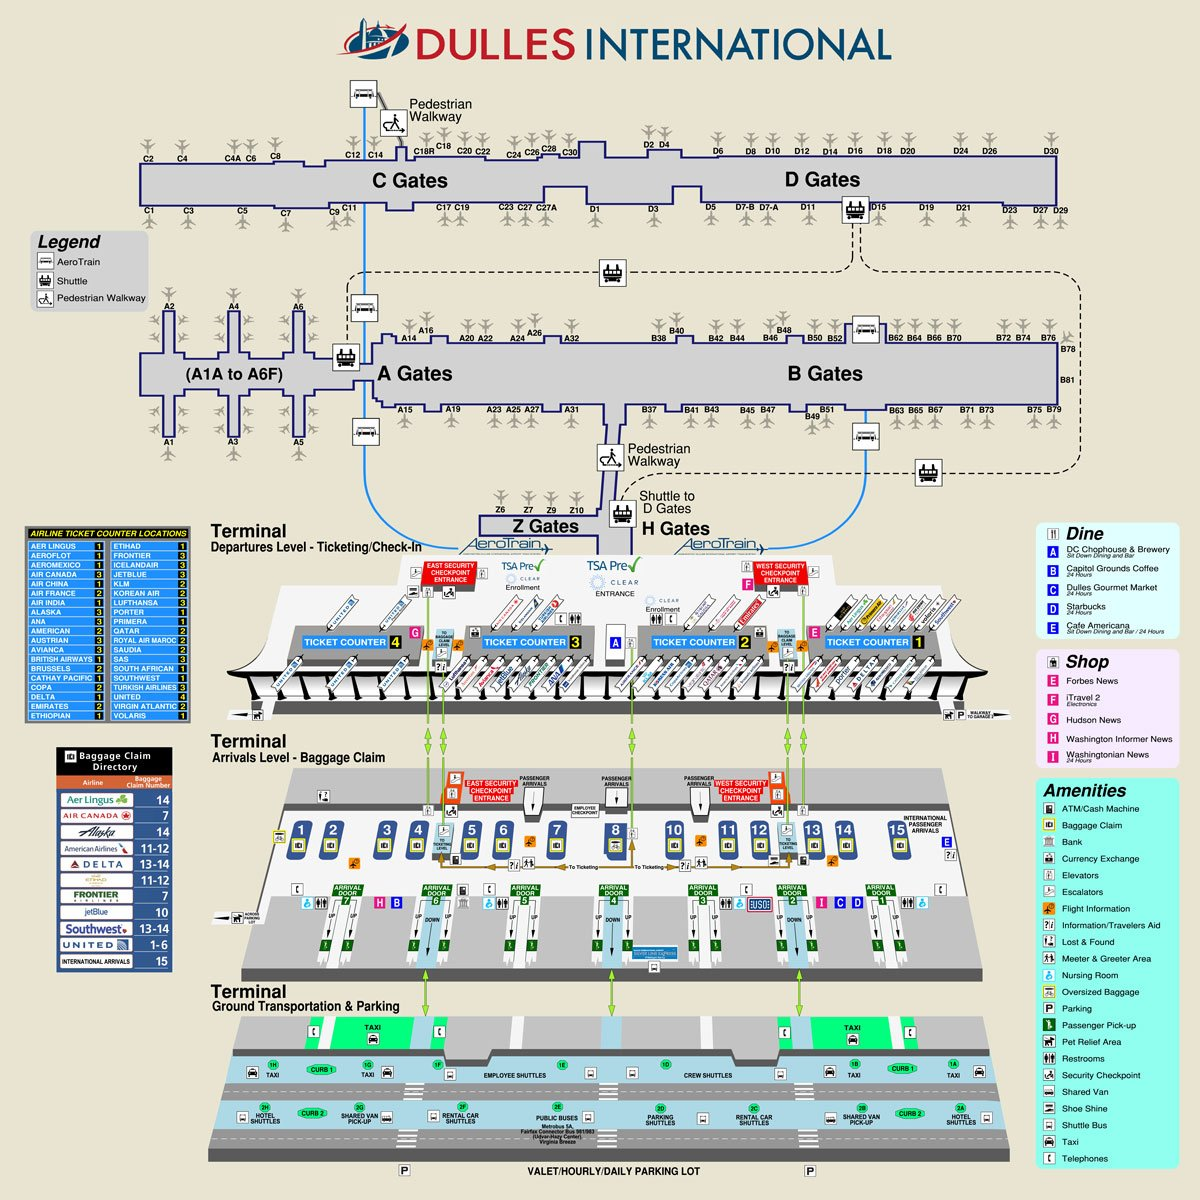 Washington Dulles International Airport Code, Map and Information ...